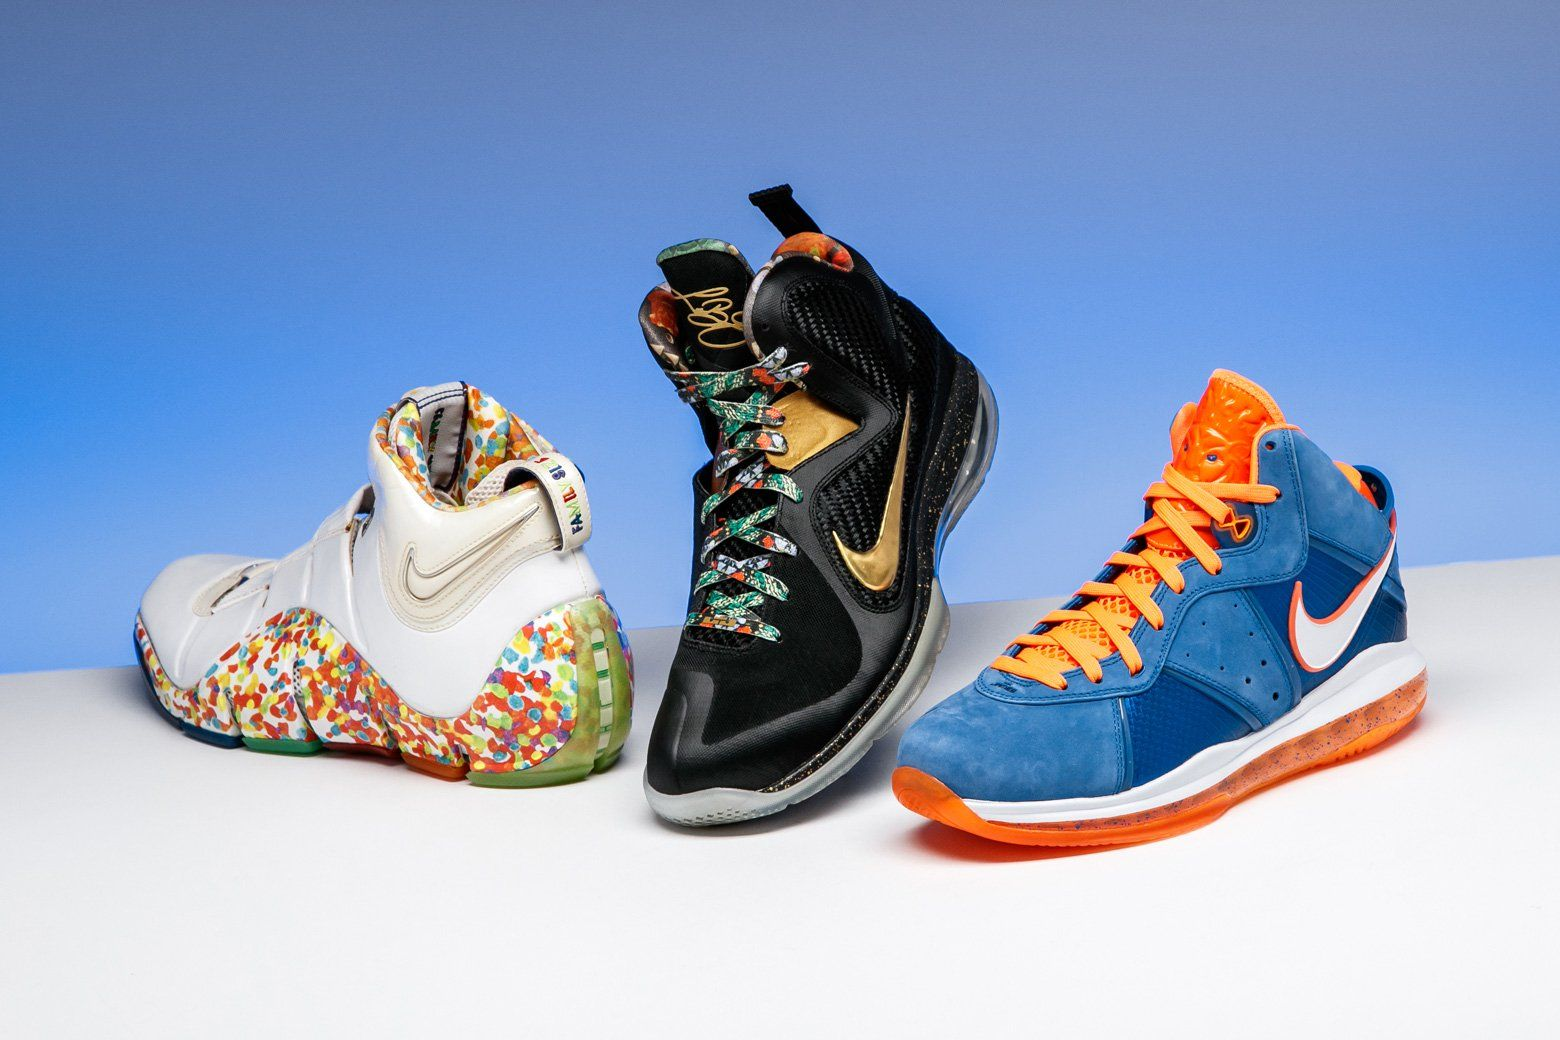 SG's 10 Most Expensive LeBron Sneakers